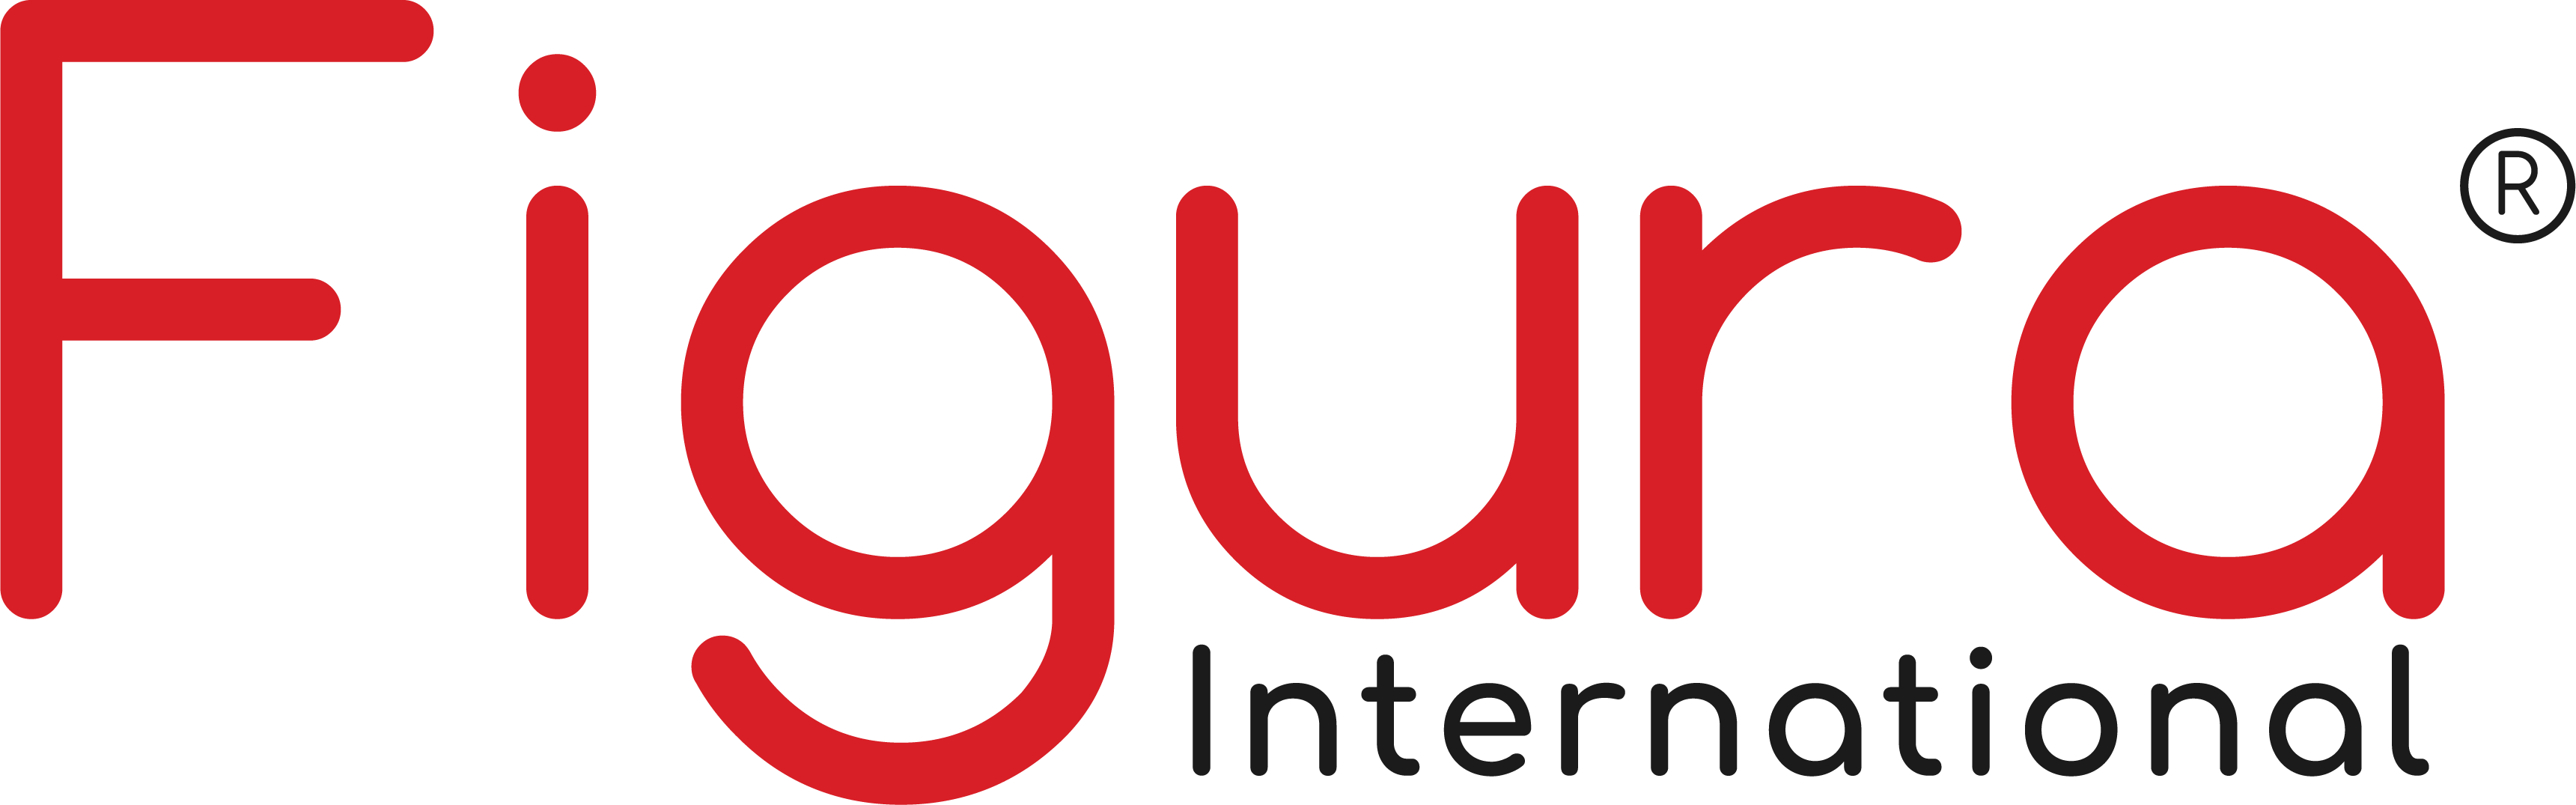 Figura International